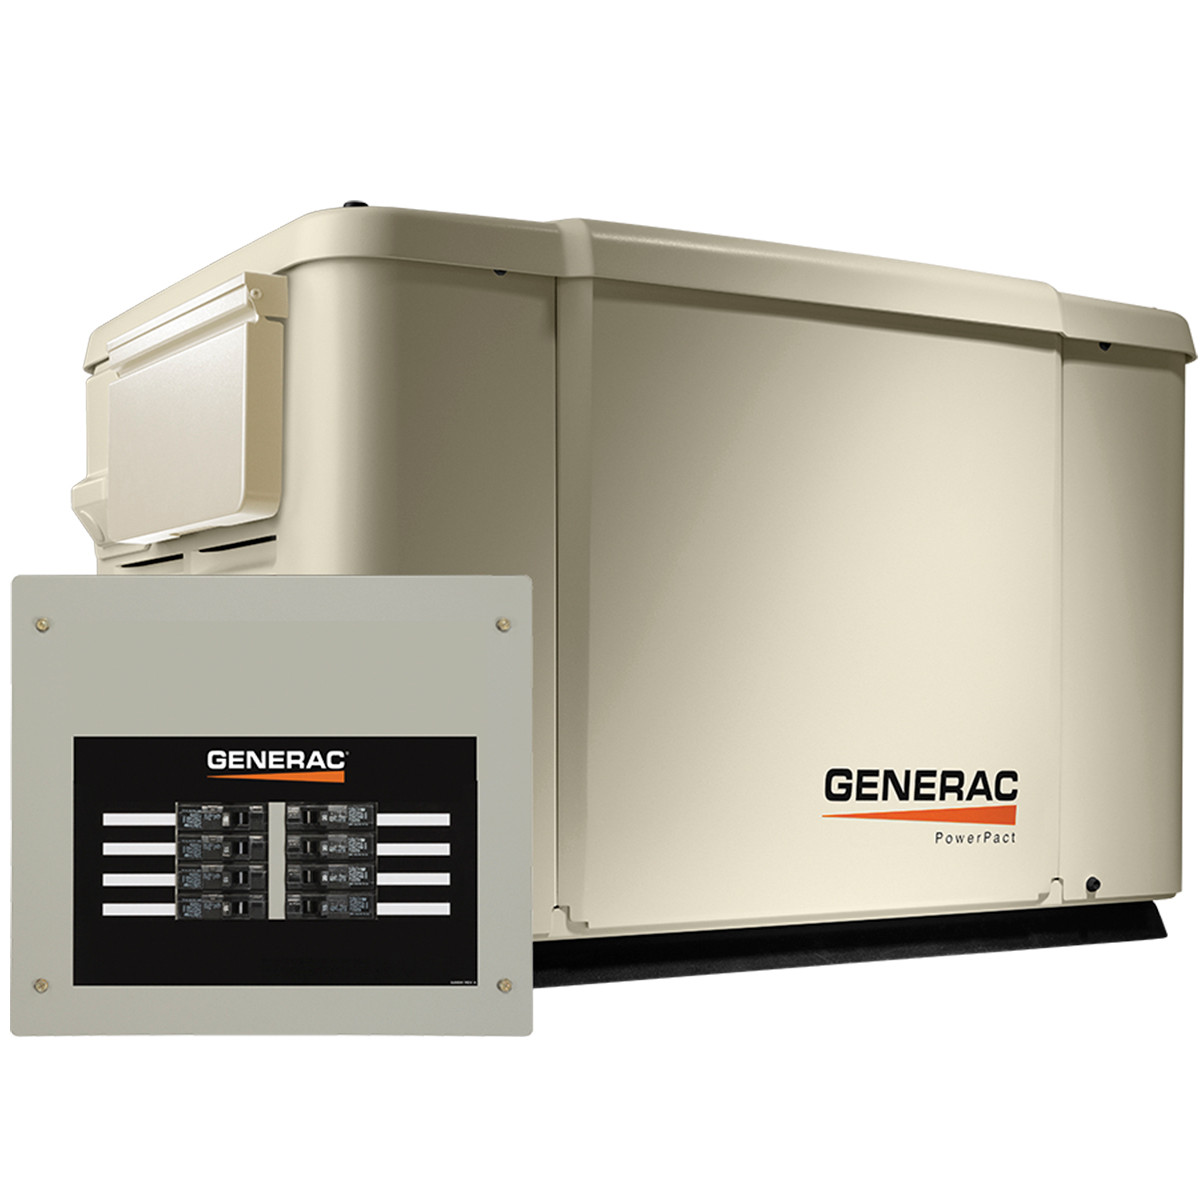 medium resolution of generac powerpact 6998 7 5kw generator with wi fi 50a 8 circuit transfer